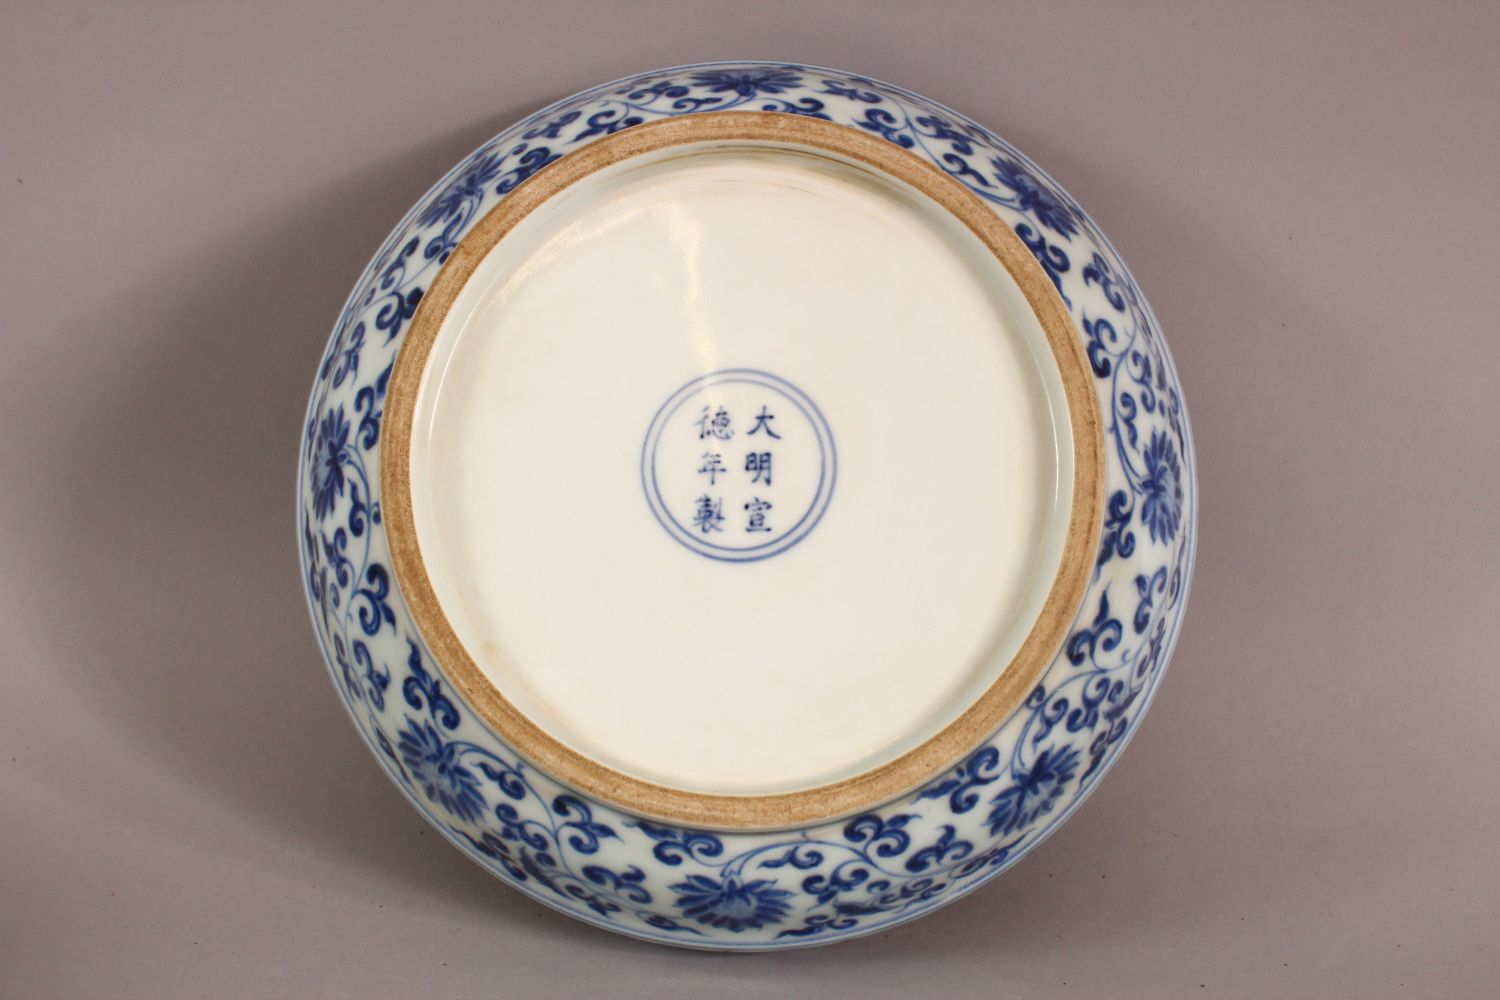 A GOOD CHINESE BLUE AND WHITE PORCELAIN BOX AND COVER, the cover decorated with birds on a peach - Image 4 of 5